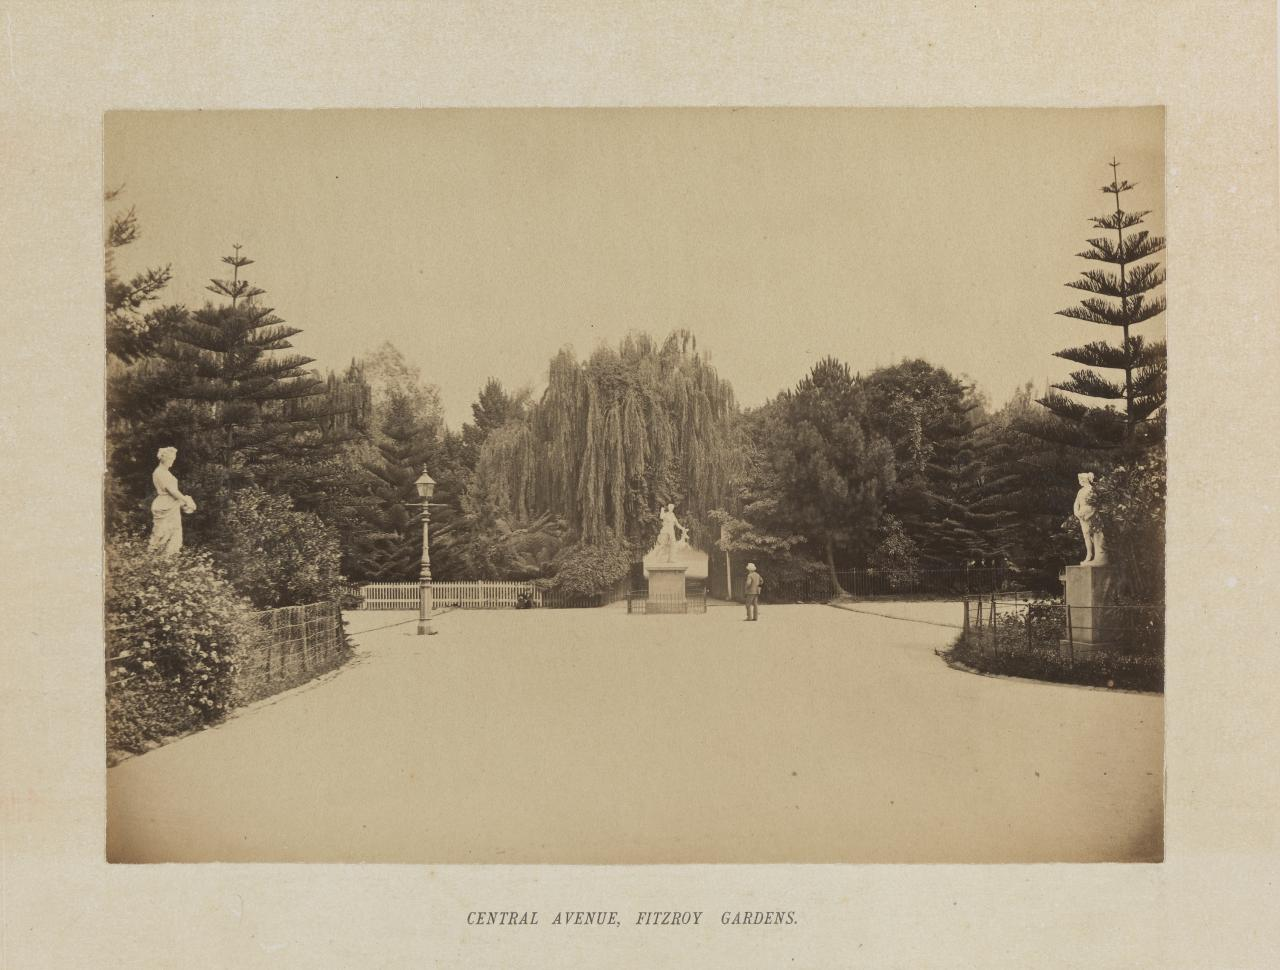 Central avenue, Fitzroy Gardens